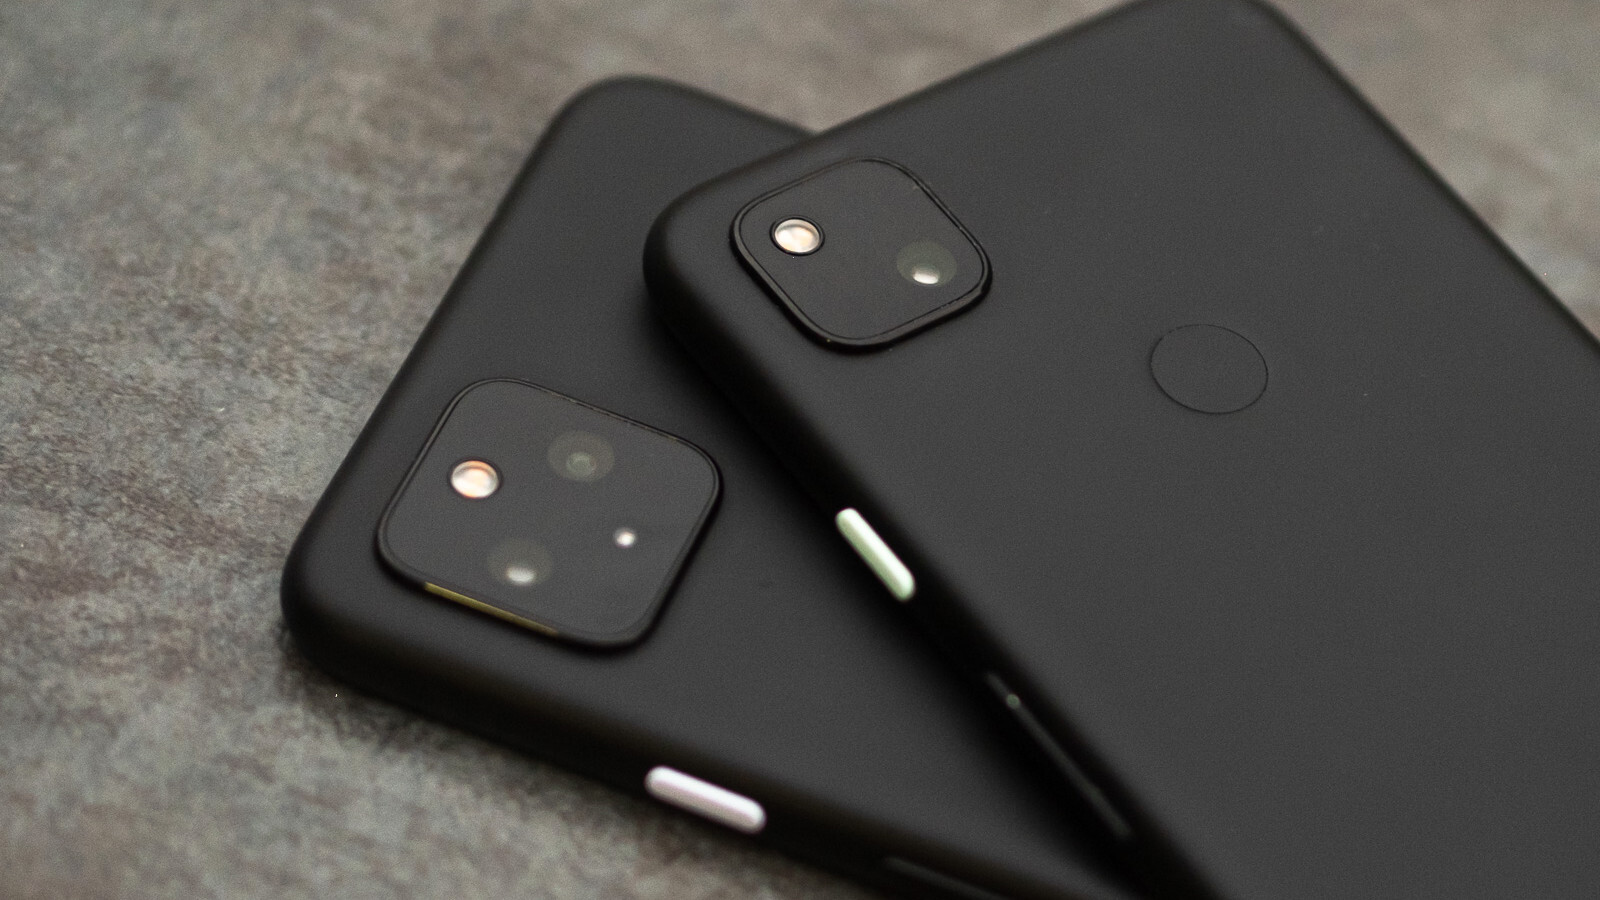 Future Pixel phones may receive 'reduced quality' unlimited Google Photos backups